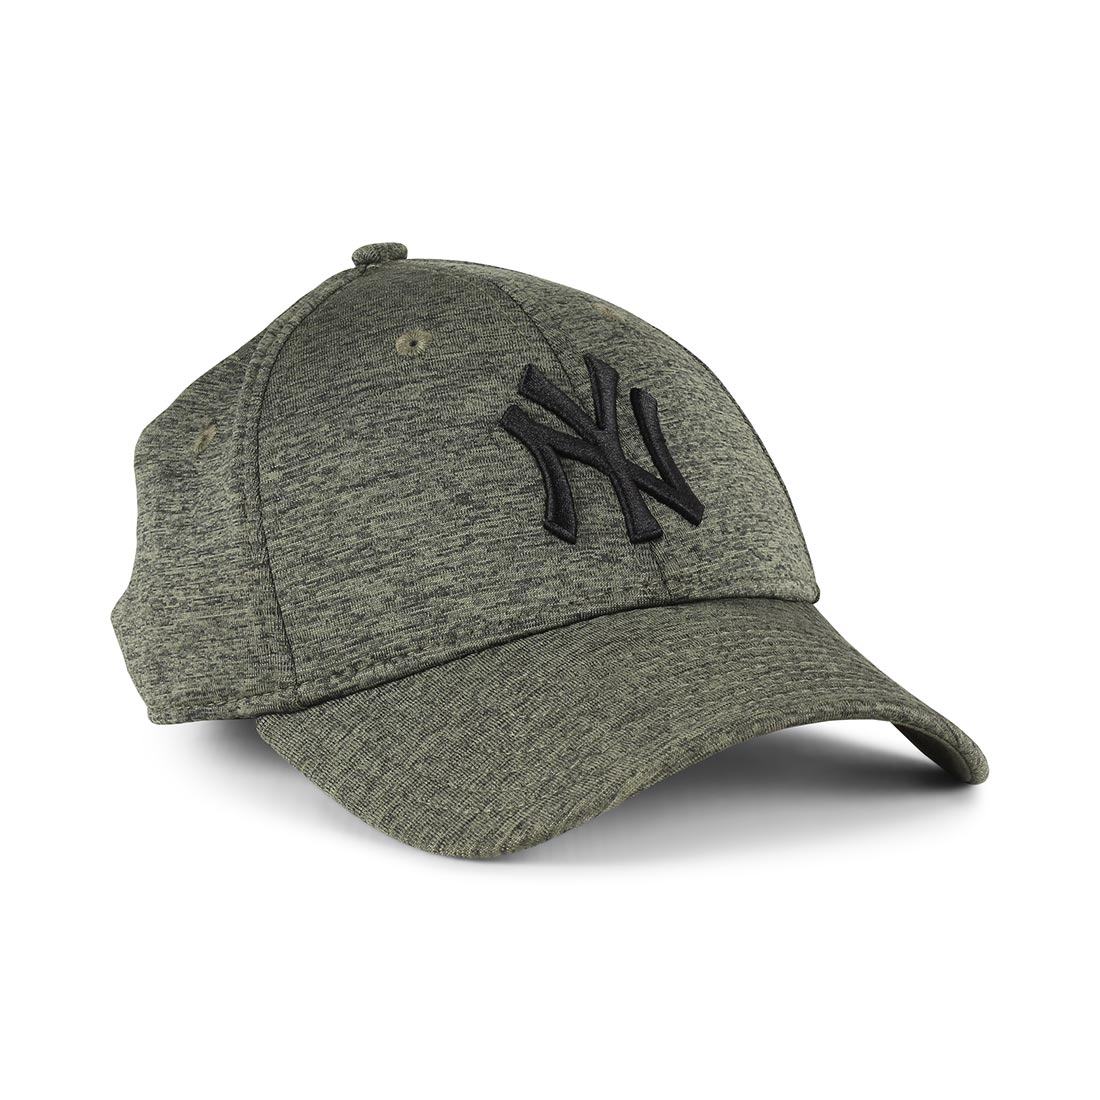 NEW ERA 9FORTY ADJUSTABLE CAP. DRY SWITCH JERSEY. NEW YORK YANKEES. OLIVE 1a0000a3523